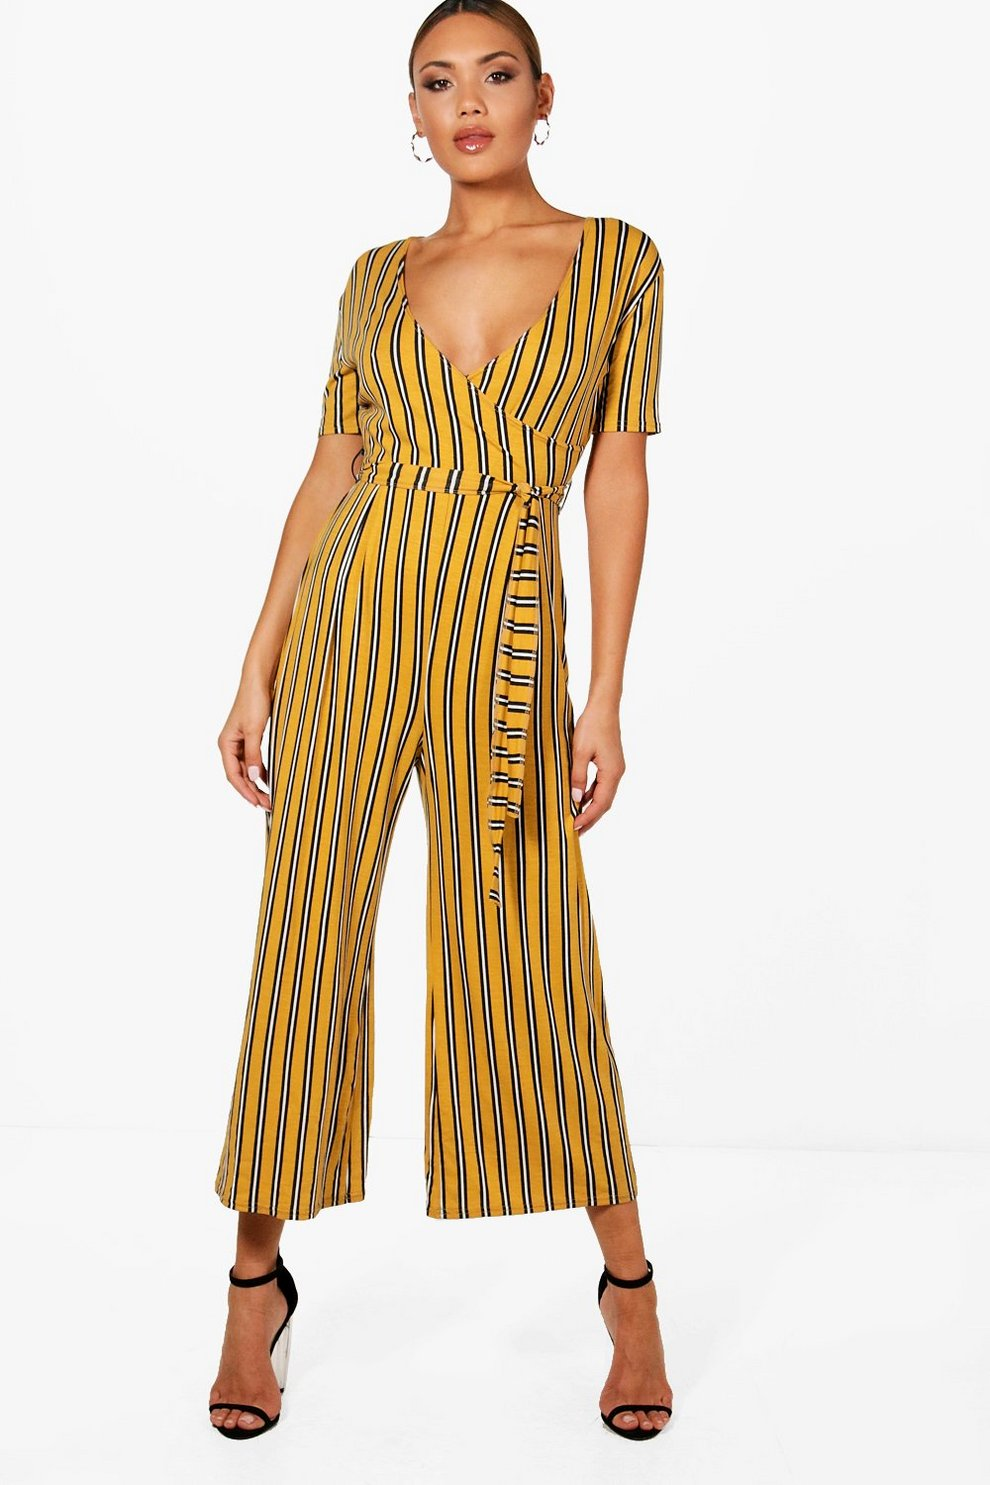 Boohoo Striped Wrap Culotte Jumpsuit Free Shipping The Cheapest Wiki Sale Online Shop For Sale Online Discount Lowest Price Huge Surprise t0700Cq28